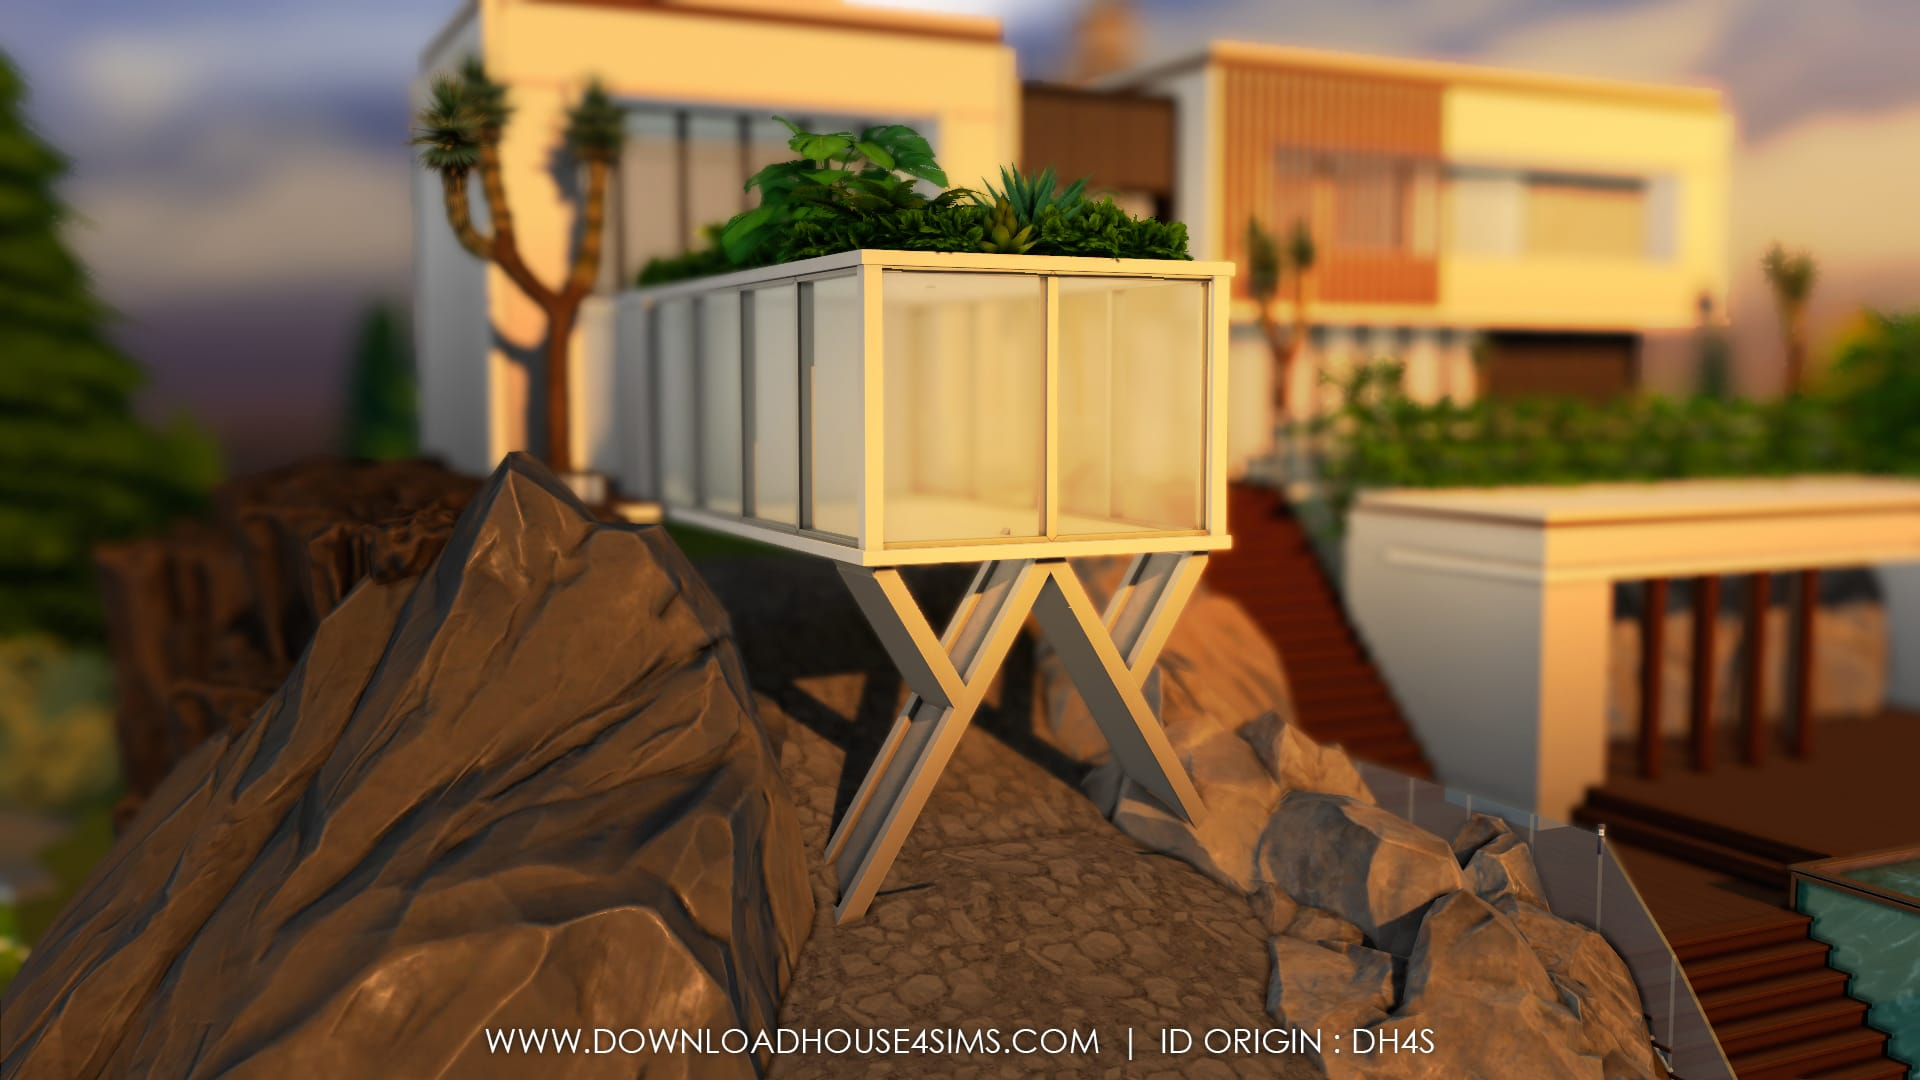 DH4S-Architect-modern-villa-maison-sims-4-a-telecharger-house-download